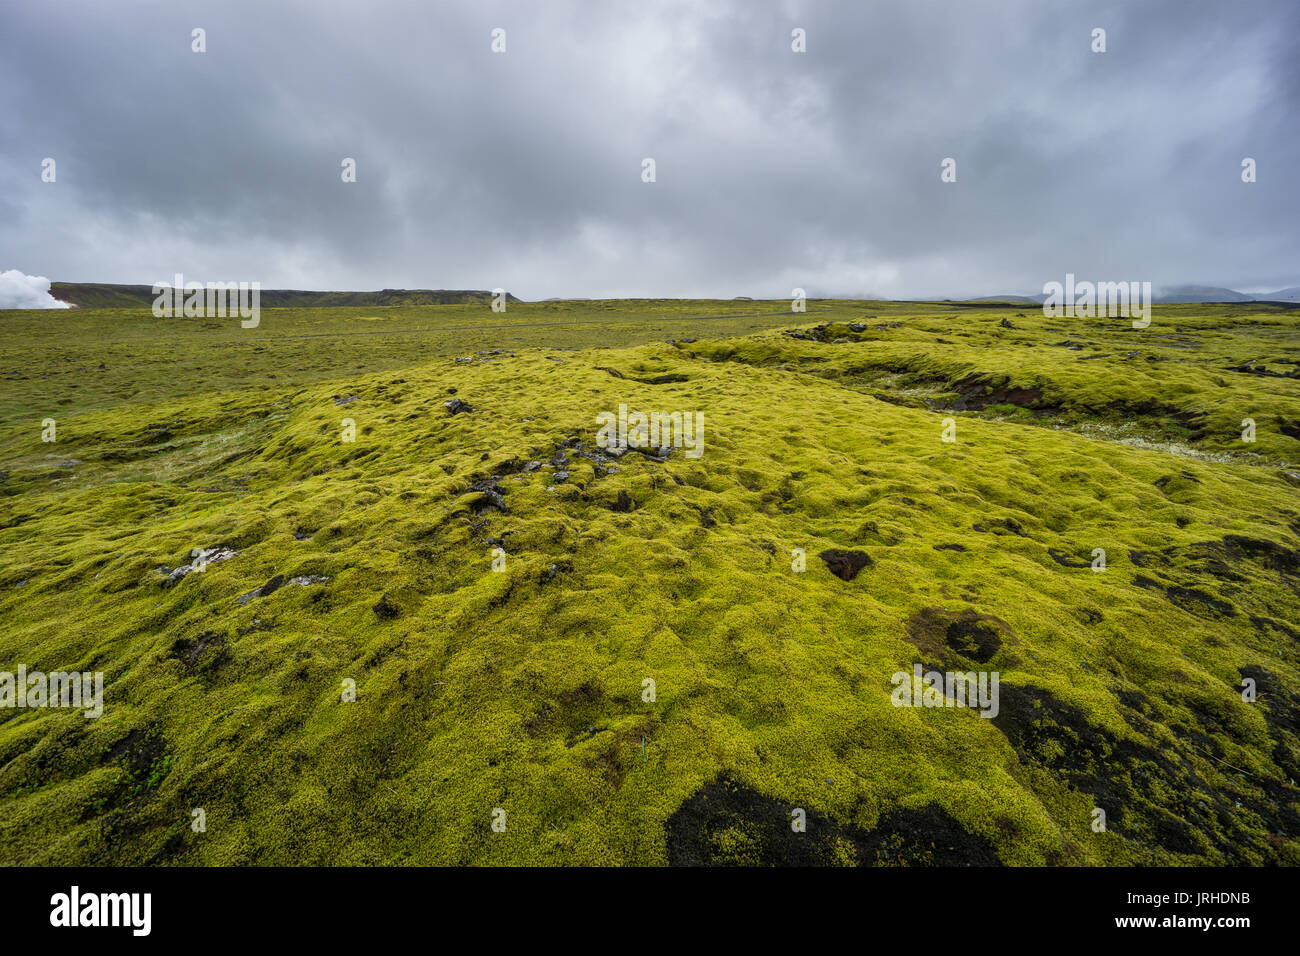 Iceland - Green moss covered lava field - Stock Image